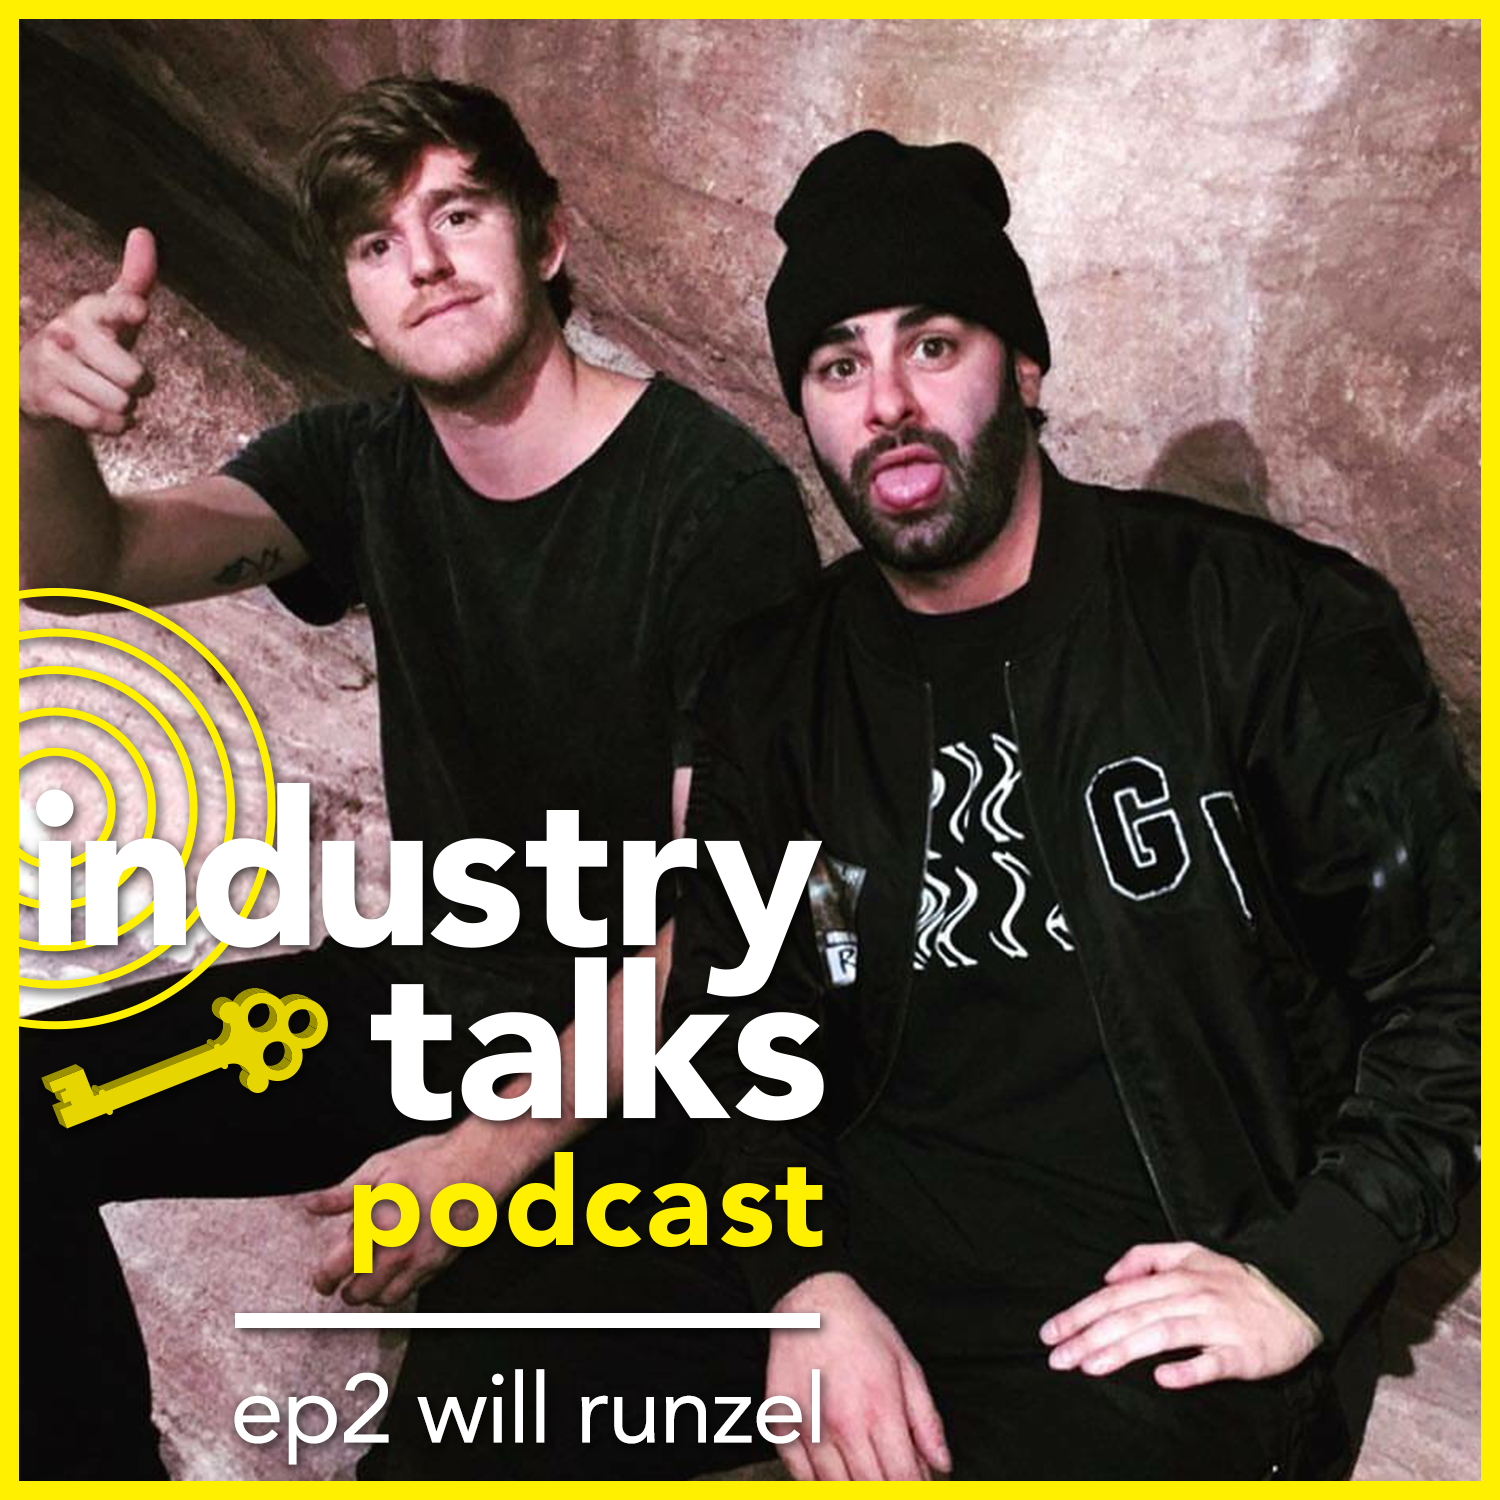 Industry_Talks-Podcast-EP2-WILL_RUNZEL-Square.png